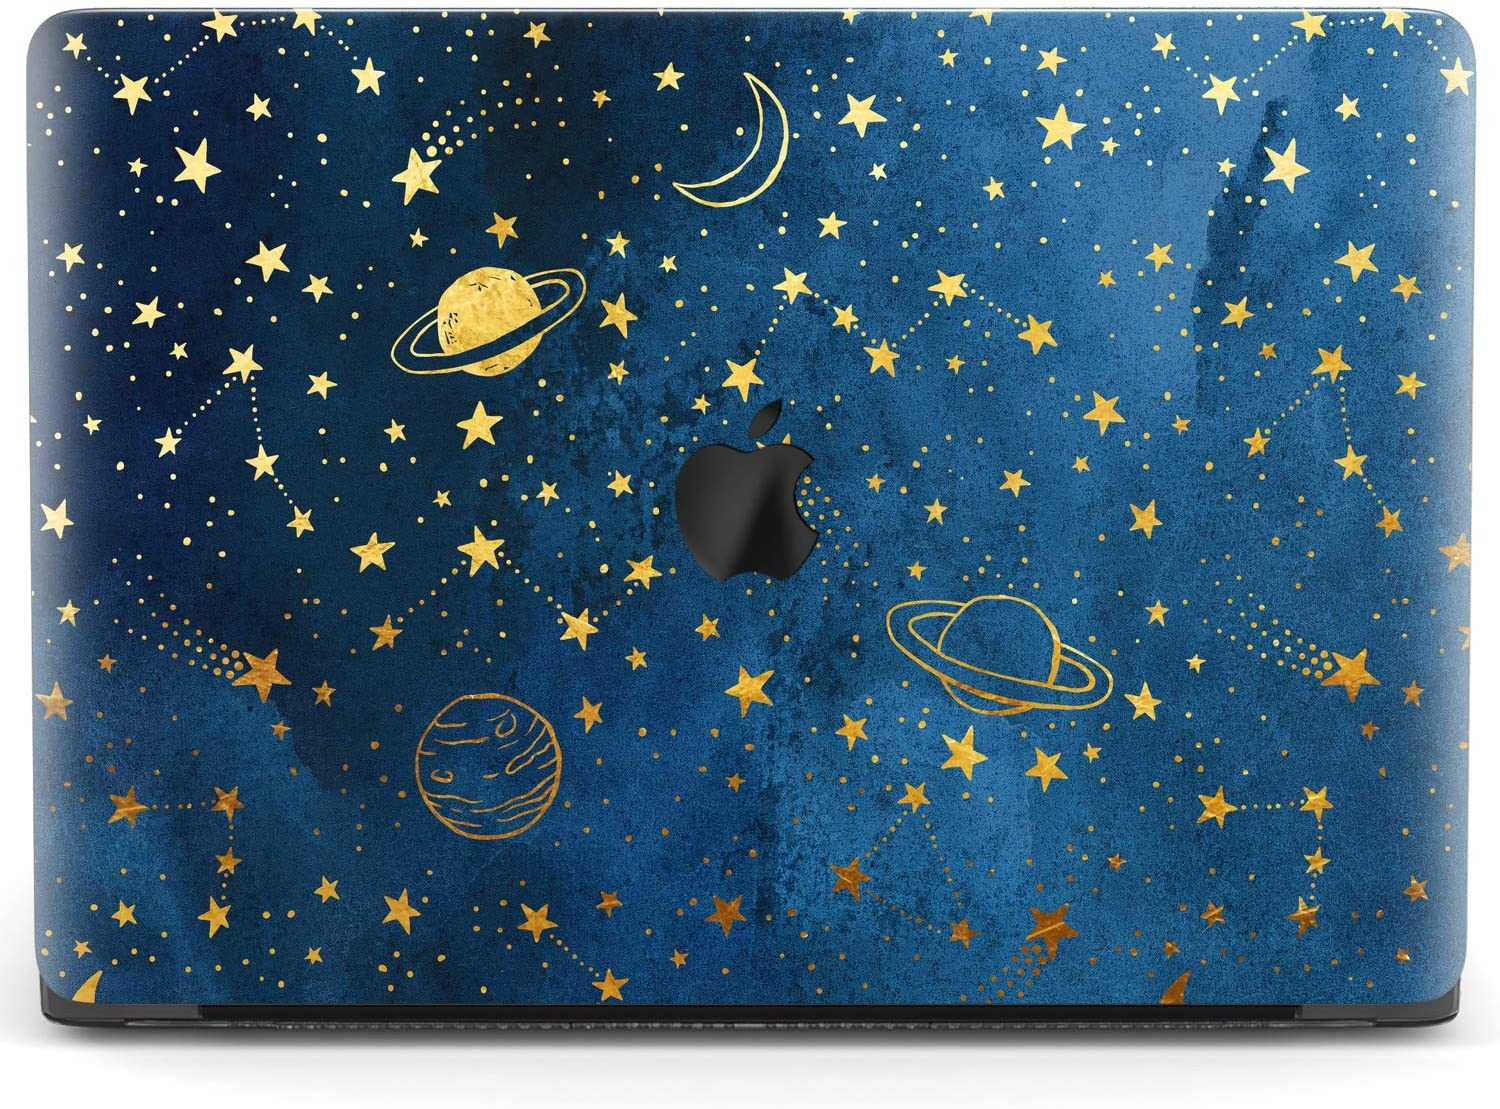 without Touch Bar and Touch ID Moon /& Constellation iCasso MacBook Pro 13 inch Case 2019 2018 2017 2016 Release A2159//A1989//A1706//A1708 Hard Cover Shell with Keyboard Cover Compatible Newest MacBook Pro 13 with